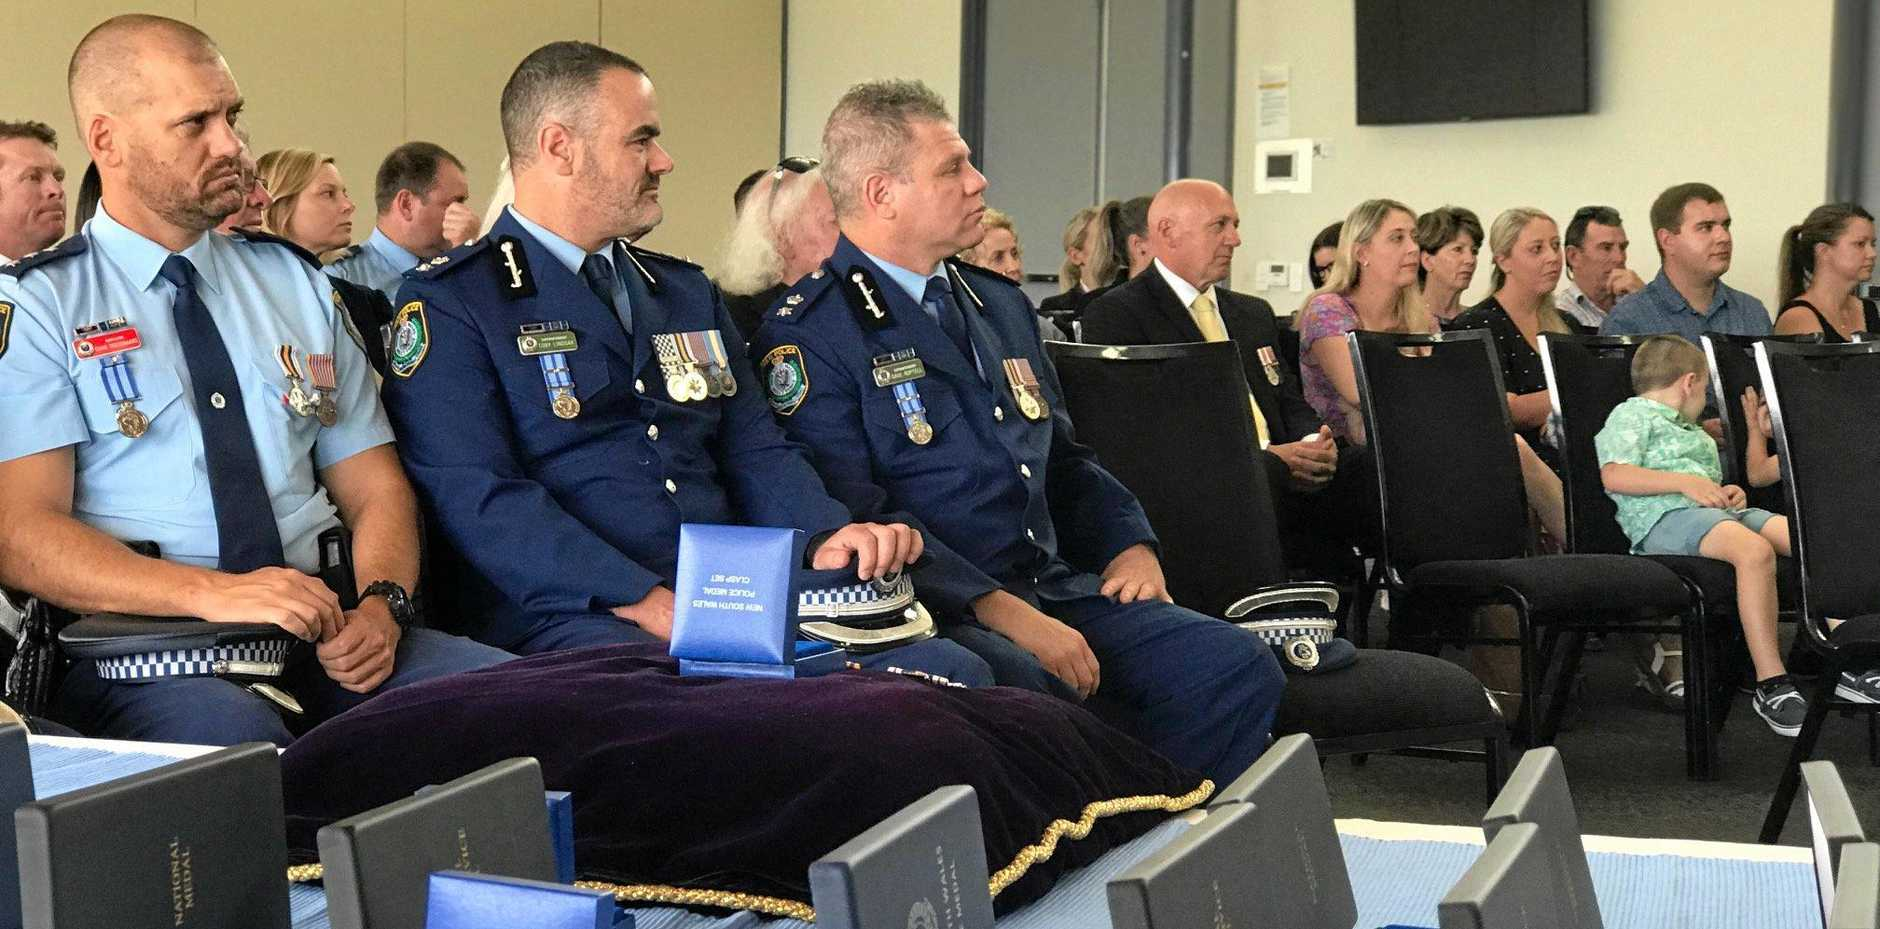 POLICE AWARDS: ON September 26, 2019, senior officers from Richmond Police District gave awards to police and community members for their service.